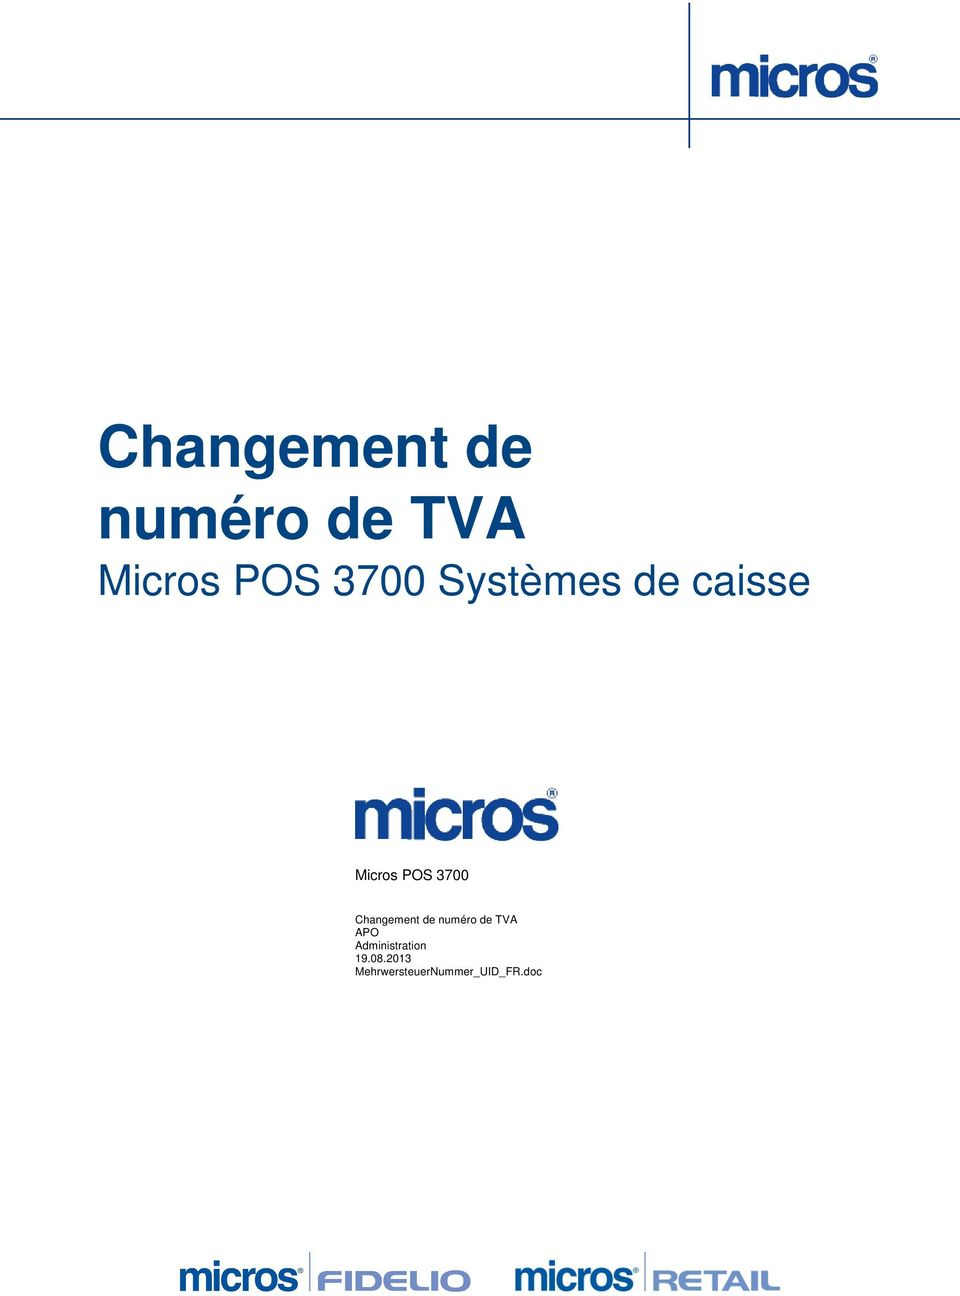 caisse Micros POS 3700